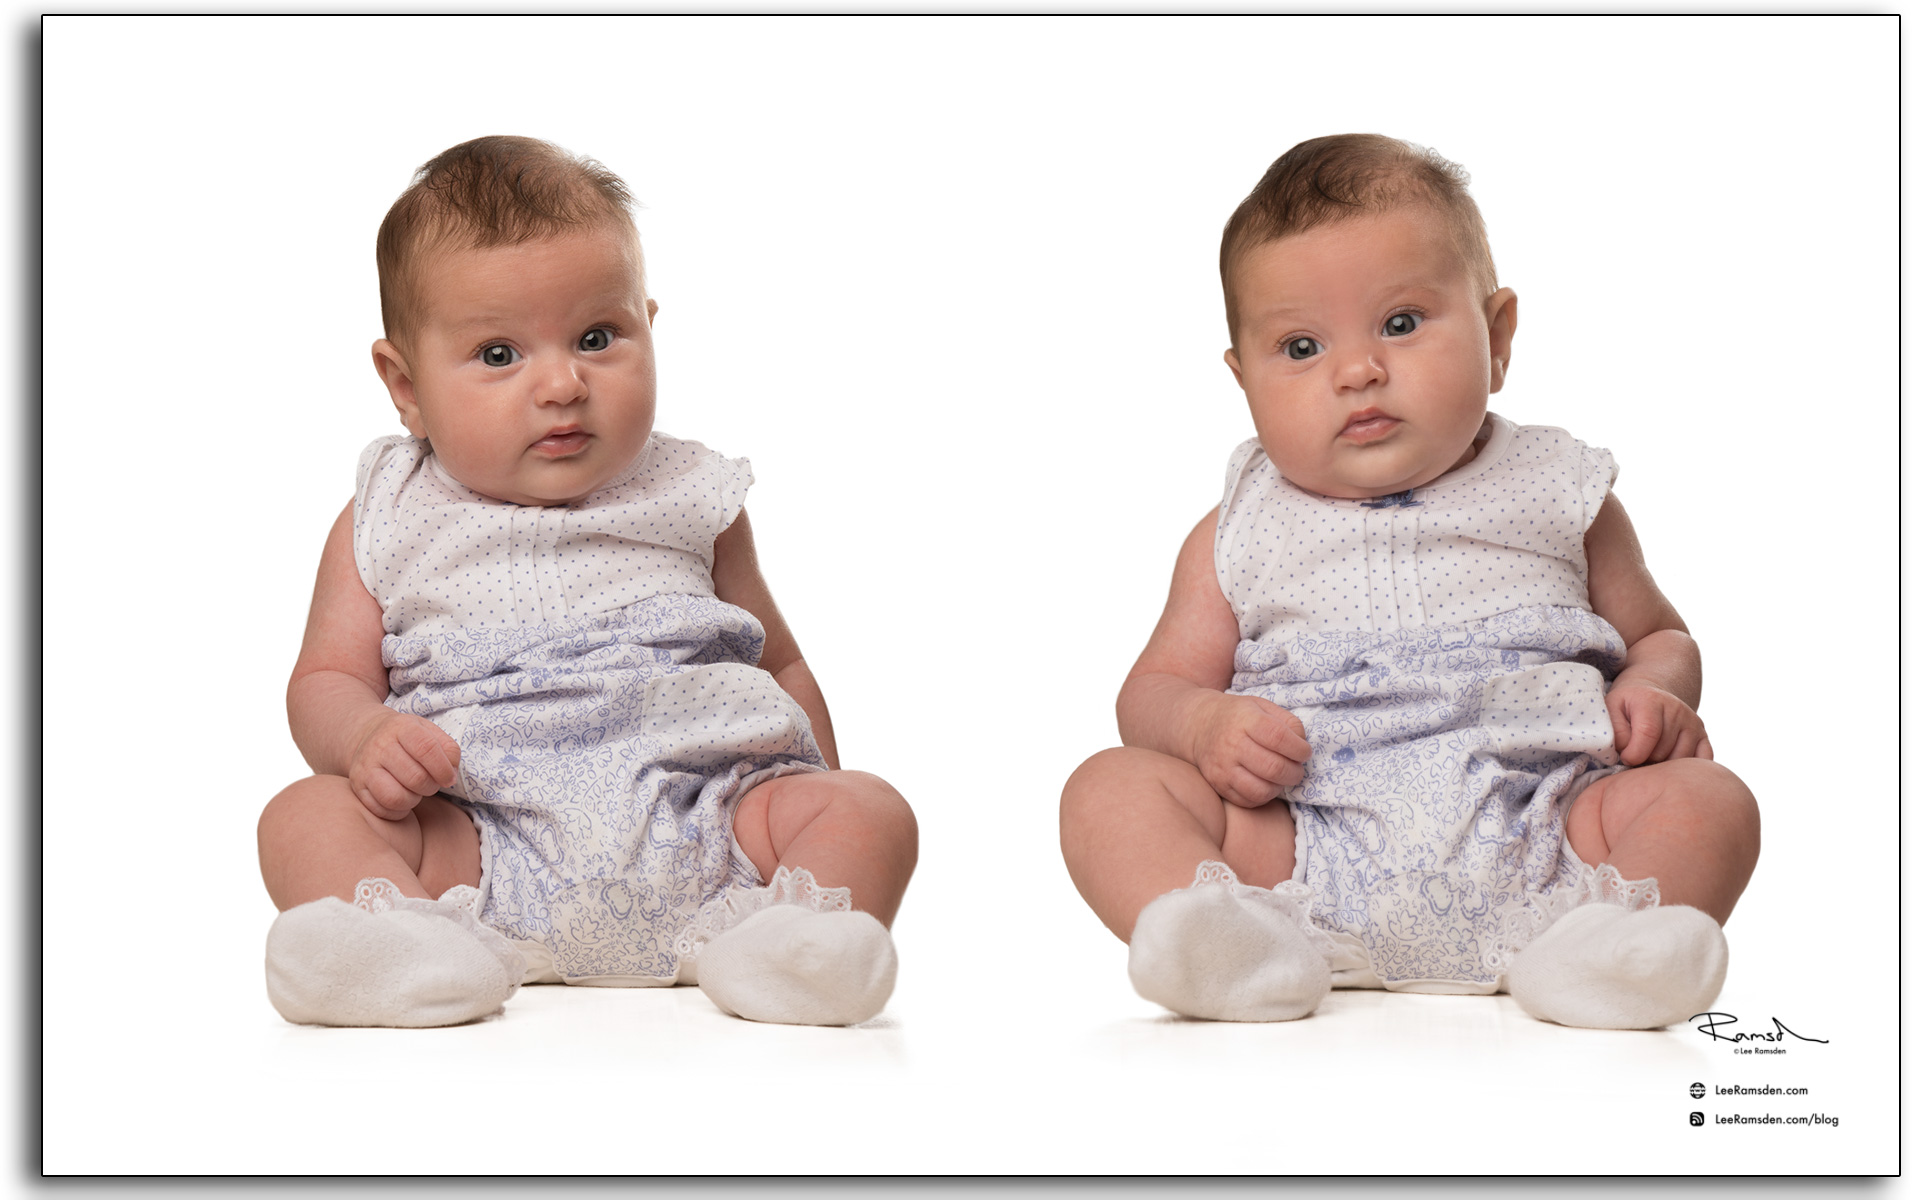 Tillie Peach professional photographer on white background